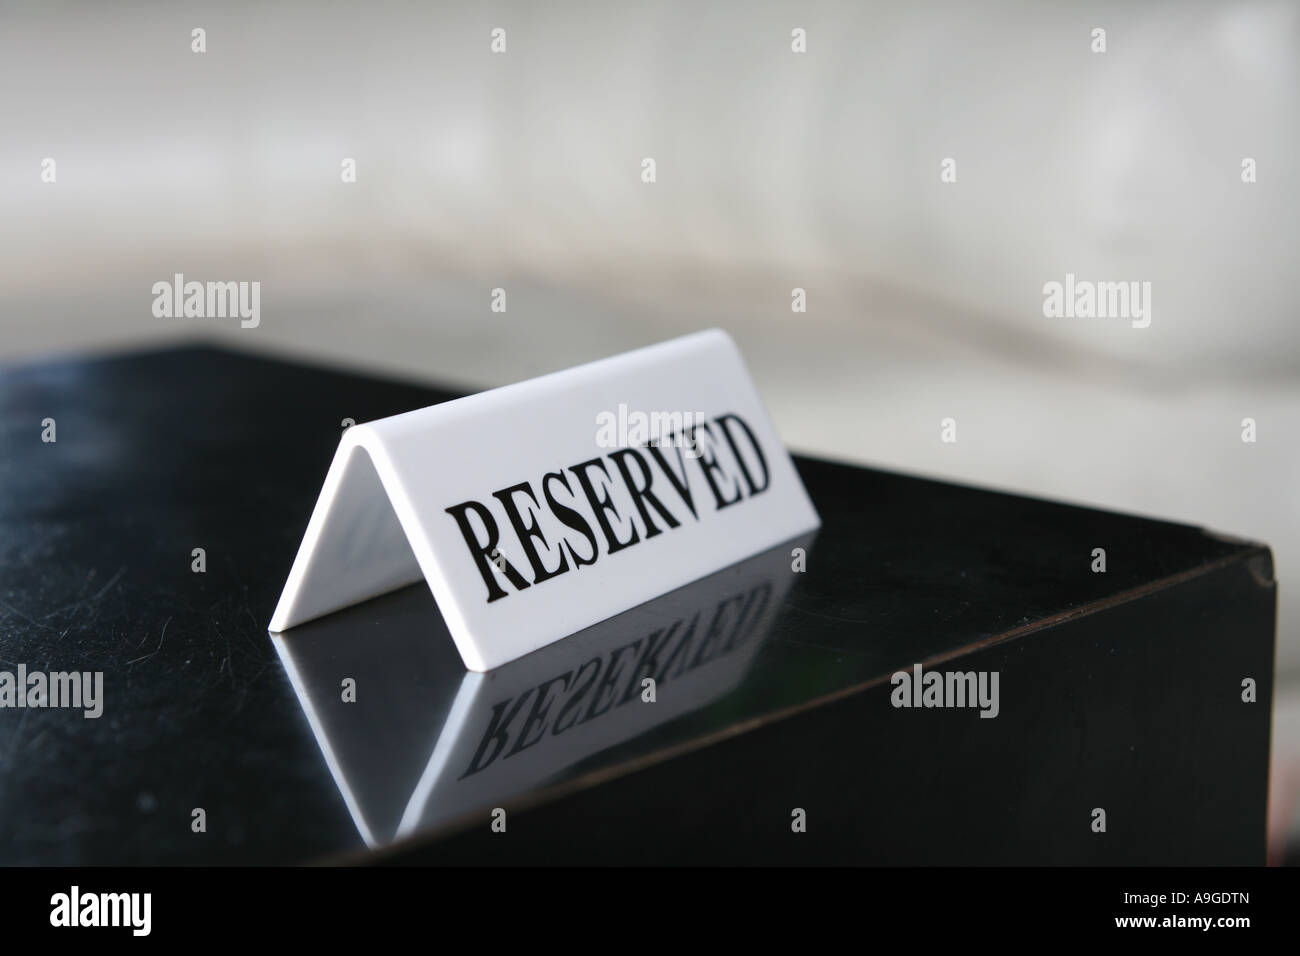 reserved sign on a bar table - Stock Image